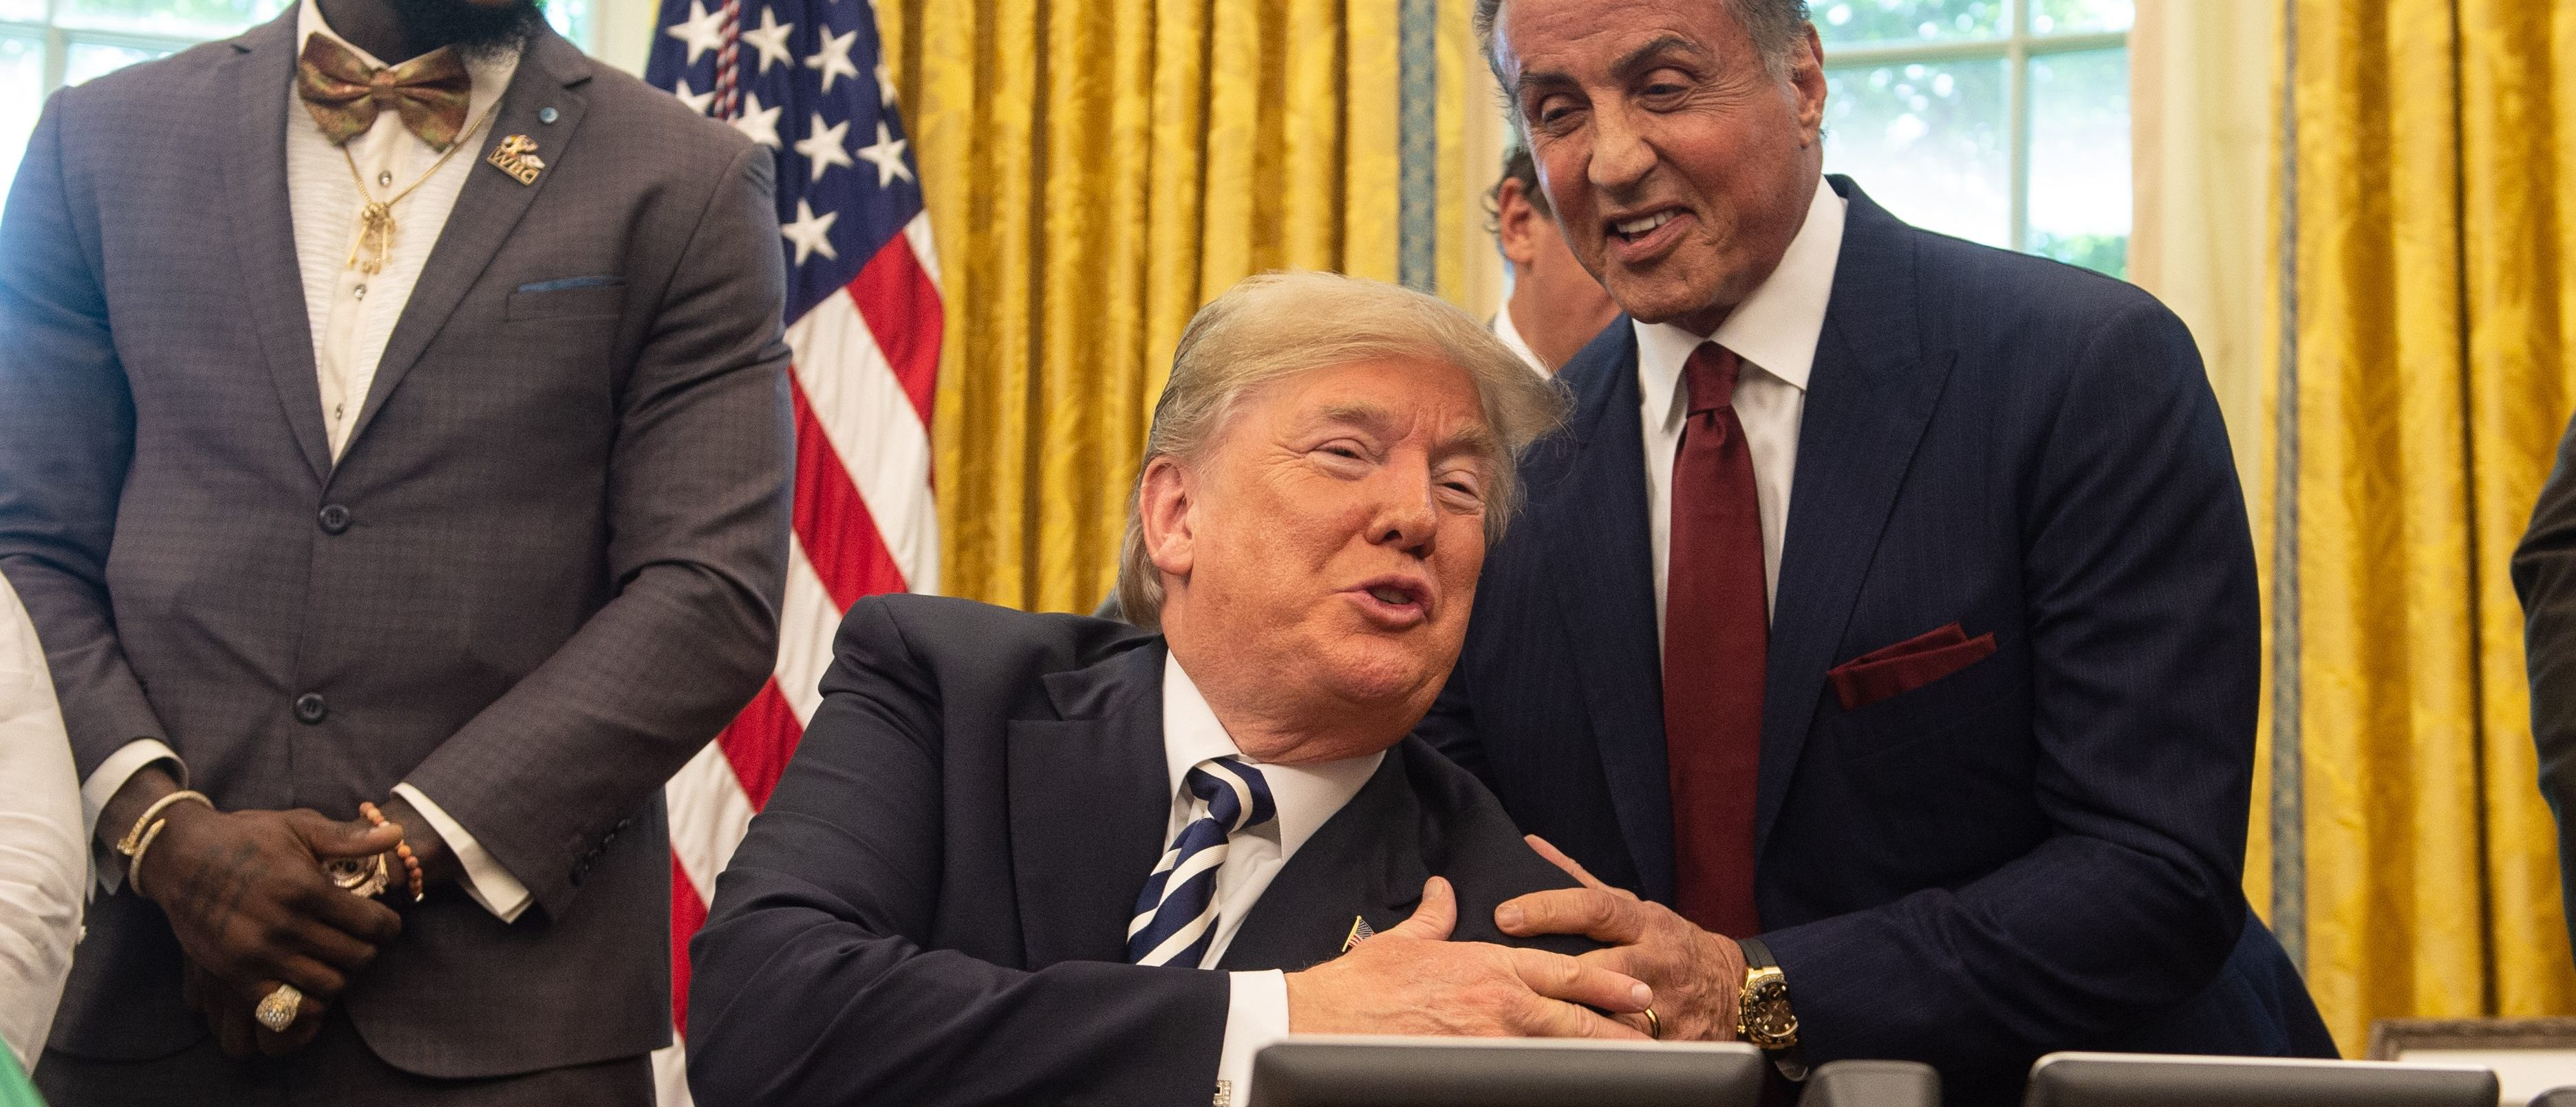 US President Donald Trump jokes with actor Sylvester Stallone(R) before signing a posthumous pardon for former world champion boxer Jack Johnson in the Oval Office at the White House in Washington, DC, on May 24, 2018, as boxer Lennox Lewis looks on. (Photo by NICHOLAS KAMM / AFP) (Photo credit should read NICHOLAS KAMM/AFP/Getty Images)